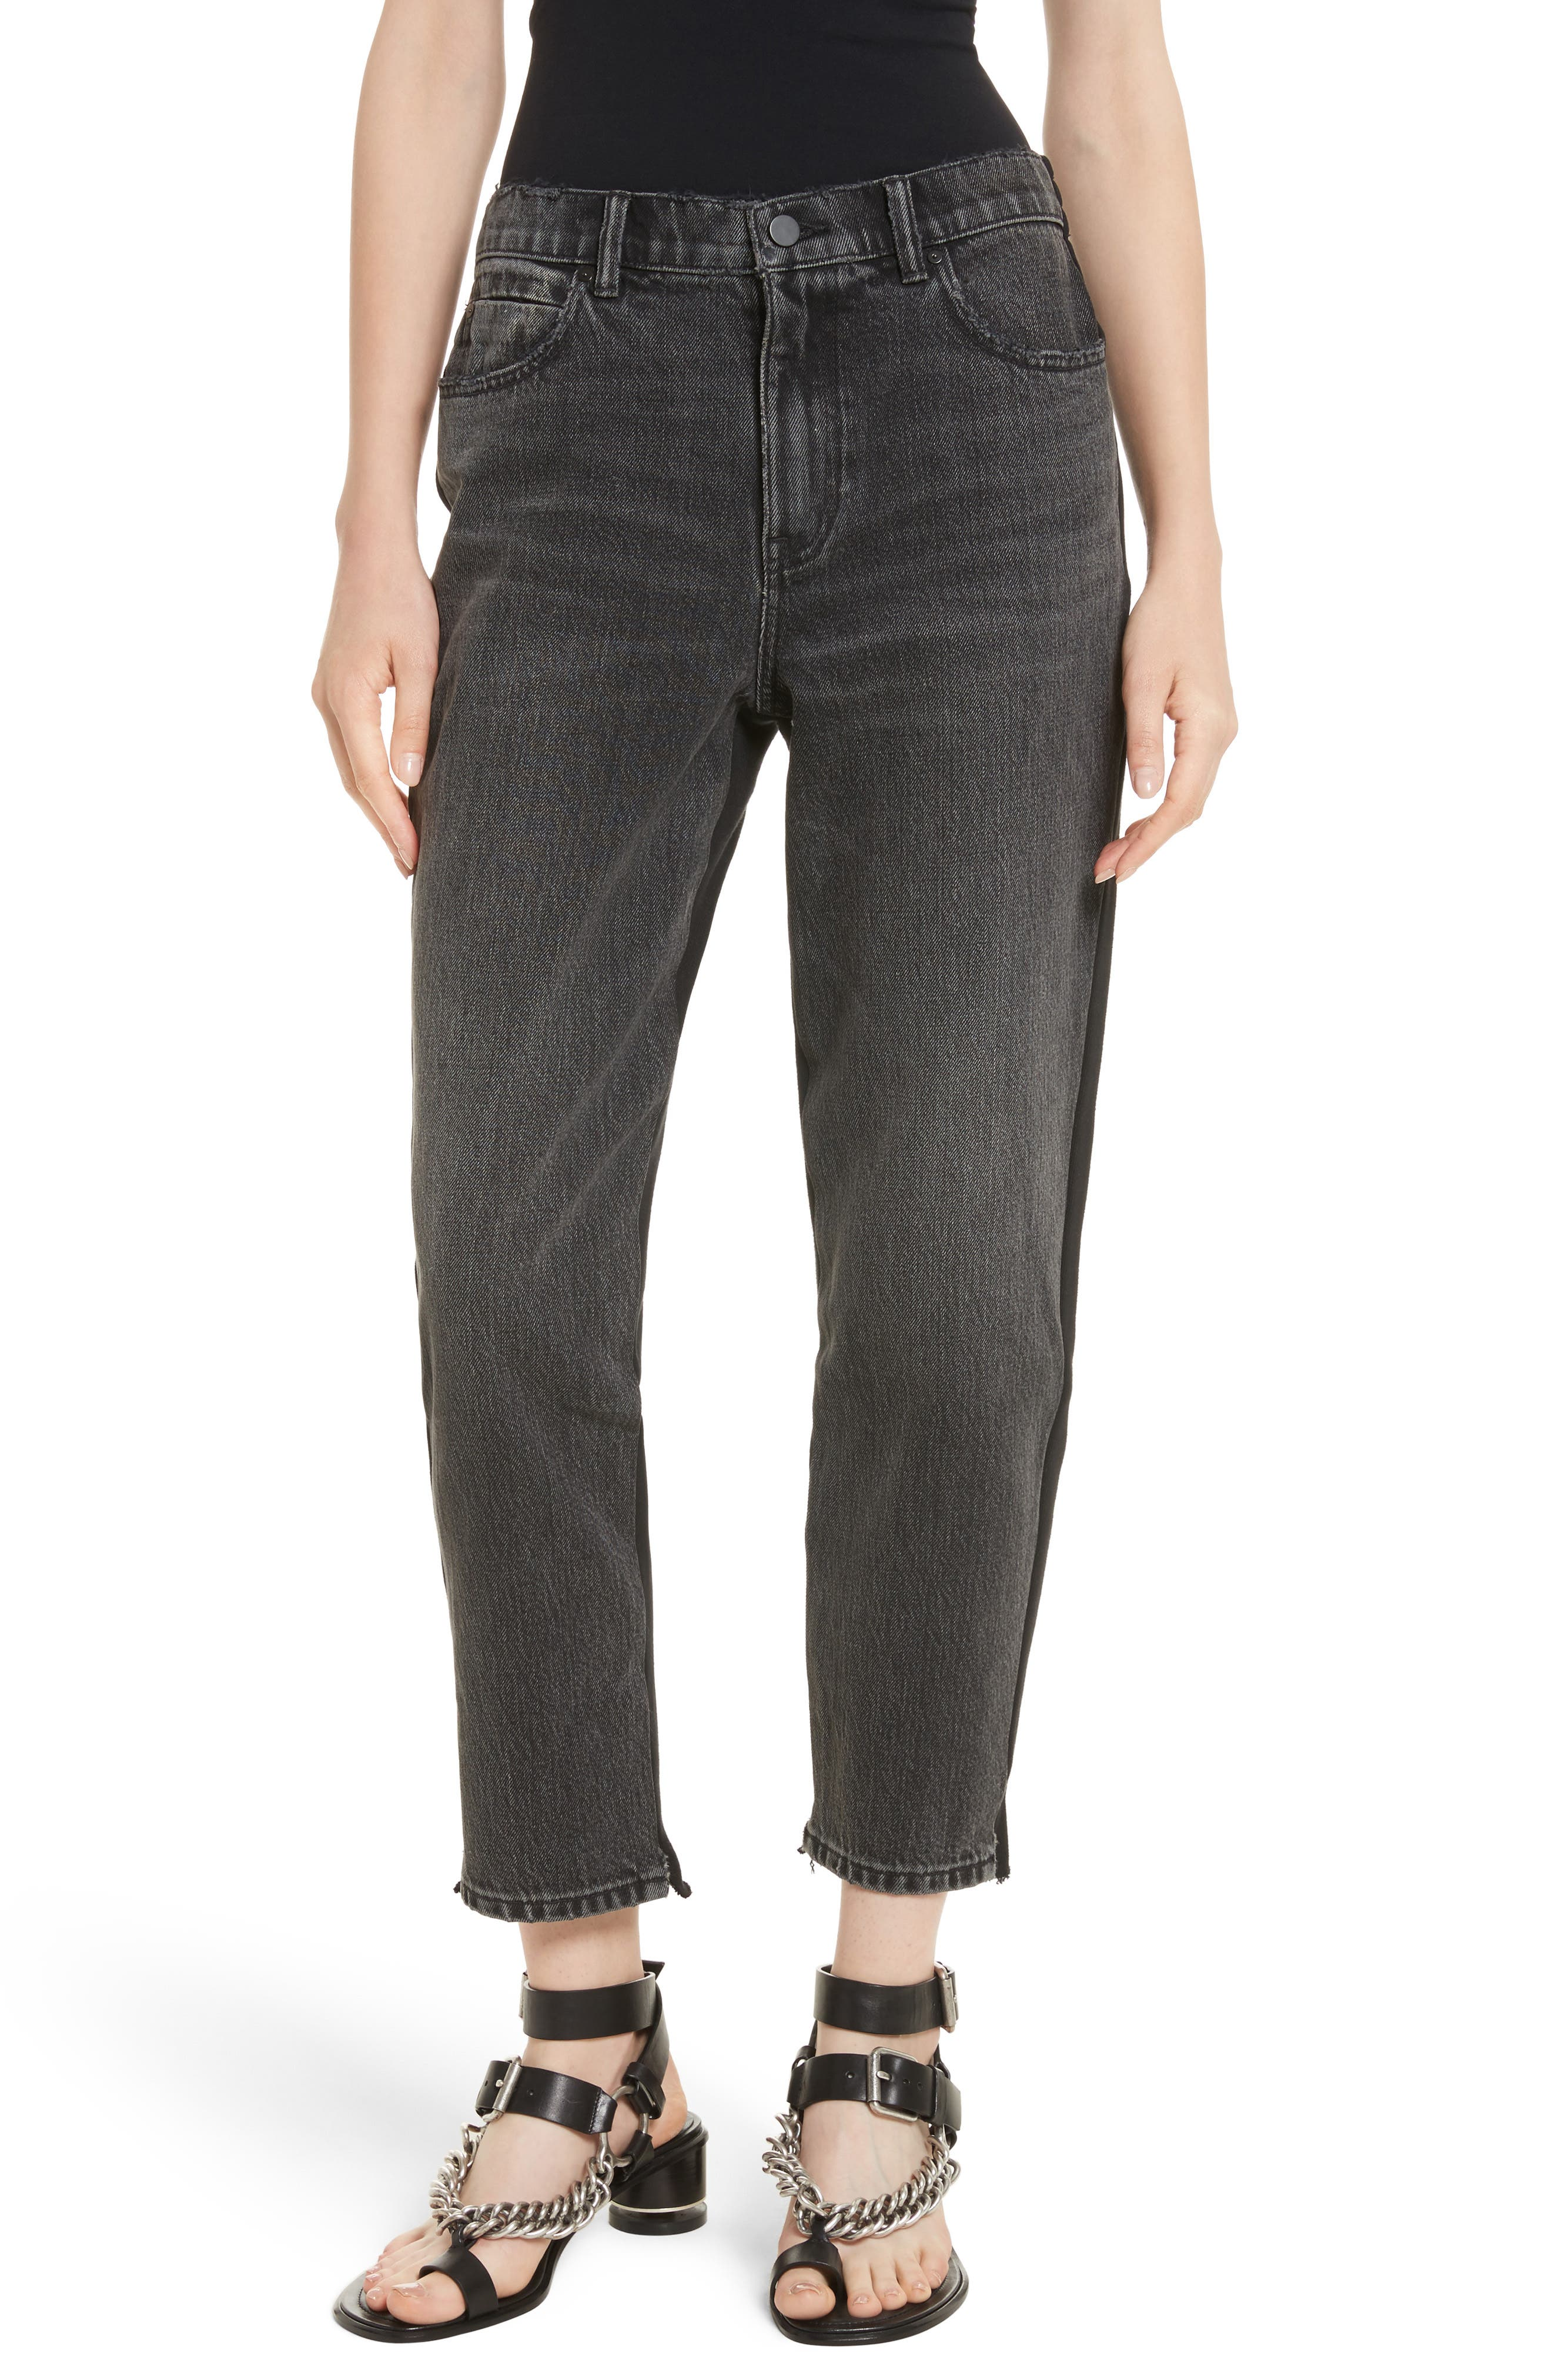 Main Image - T by Alexander Wang Hybrid Sweatpants Jeans